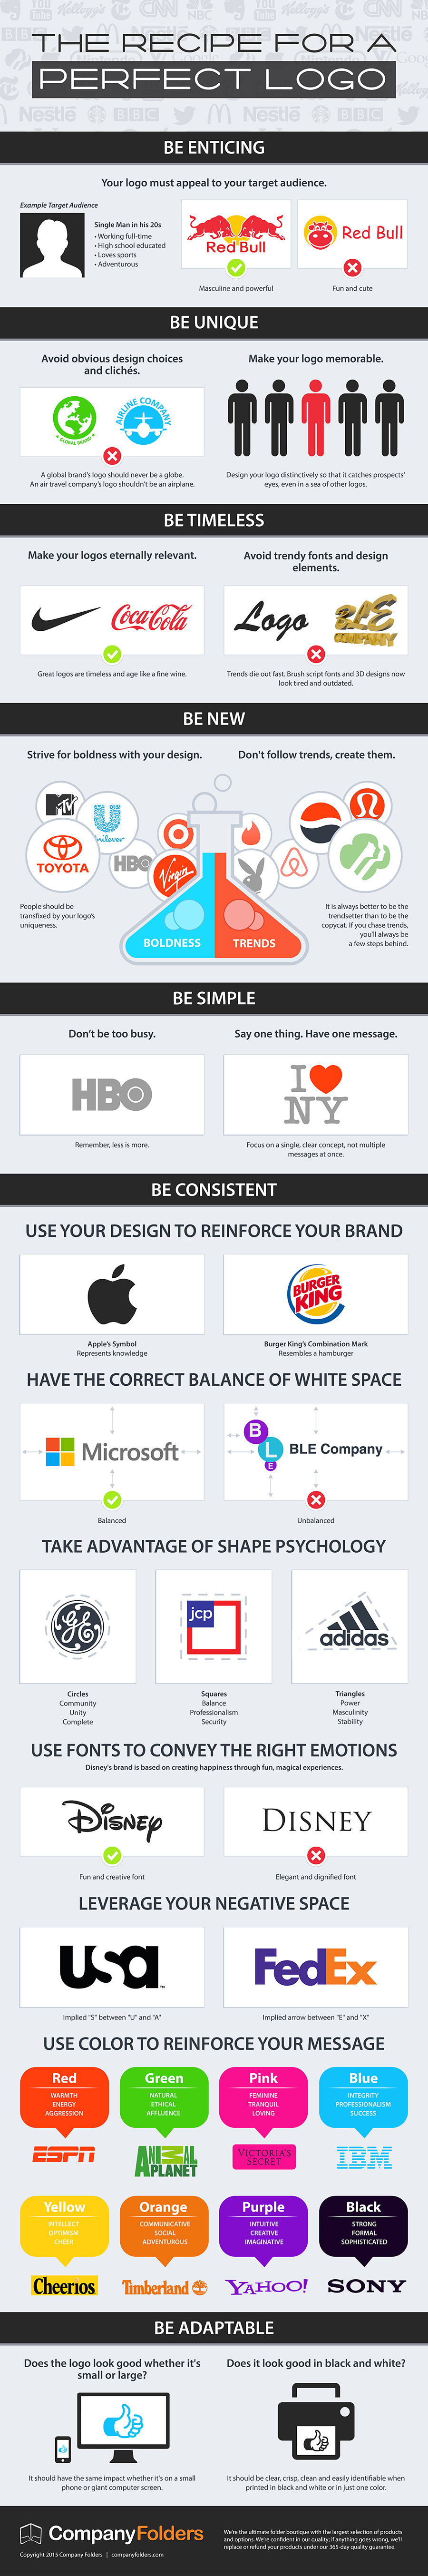 How to Design the Perfect Logo